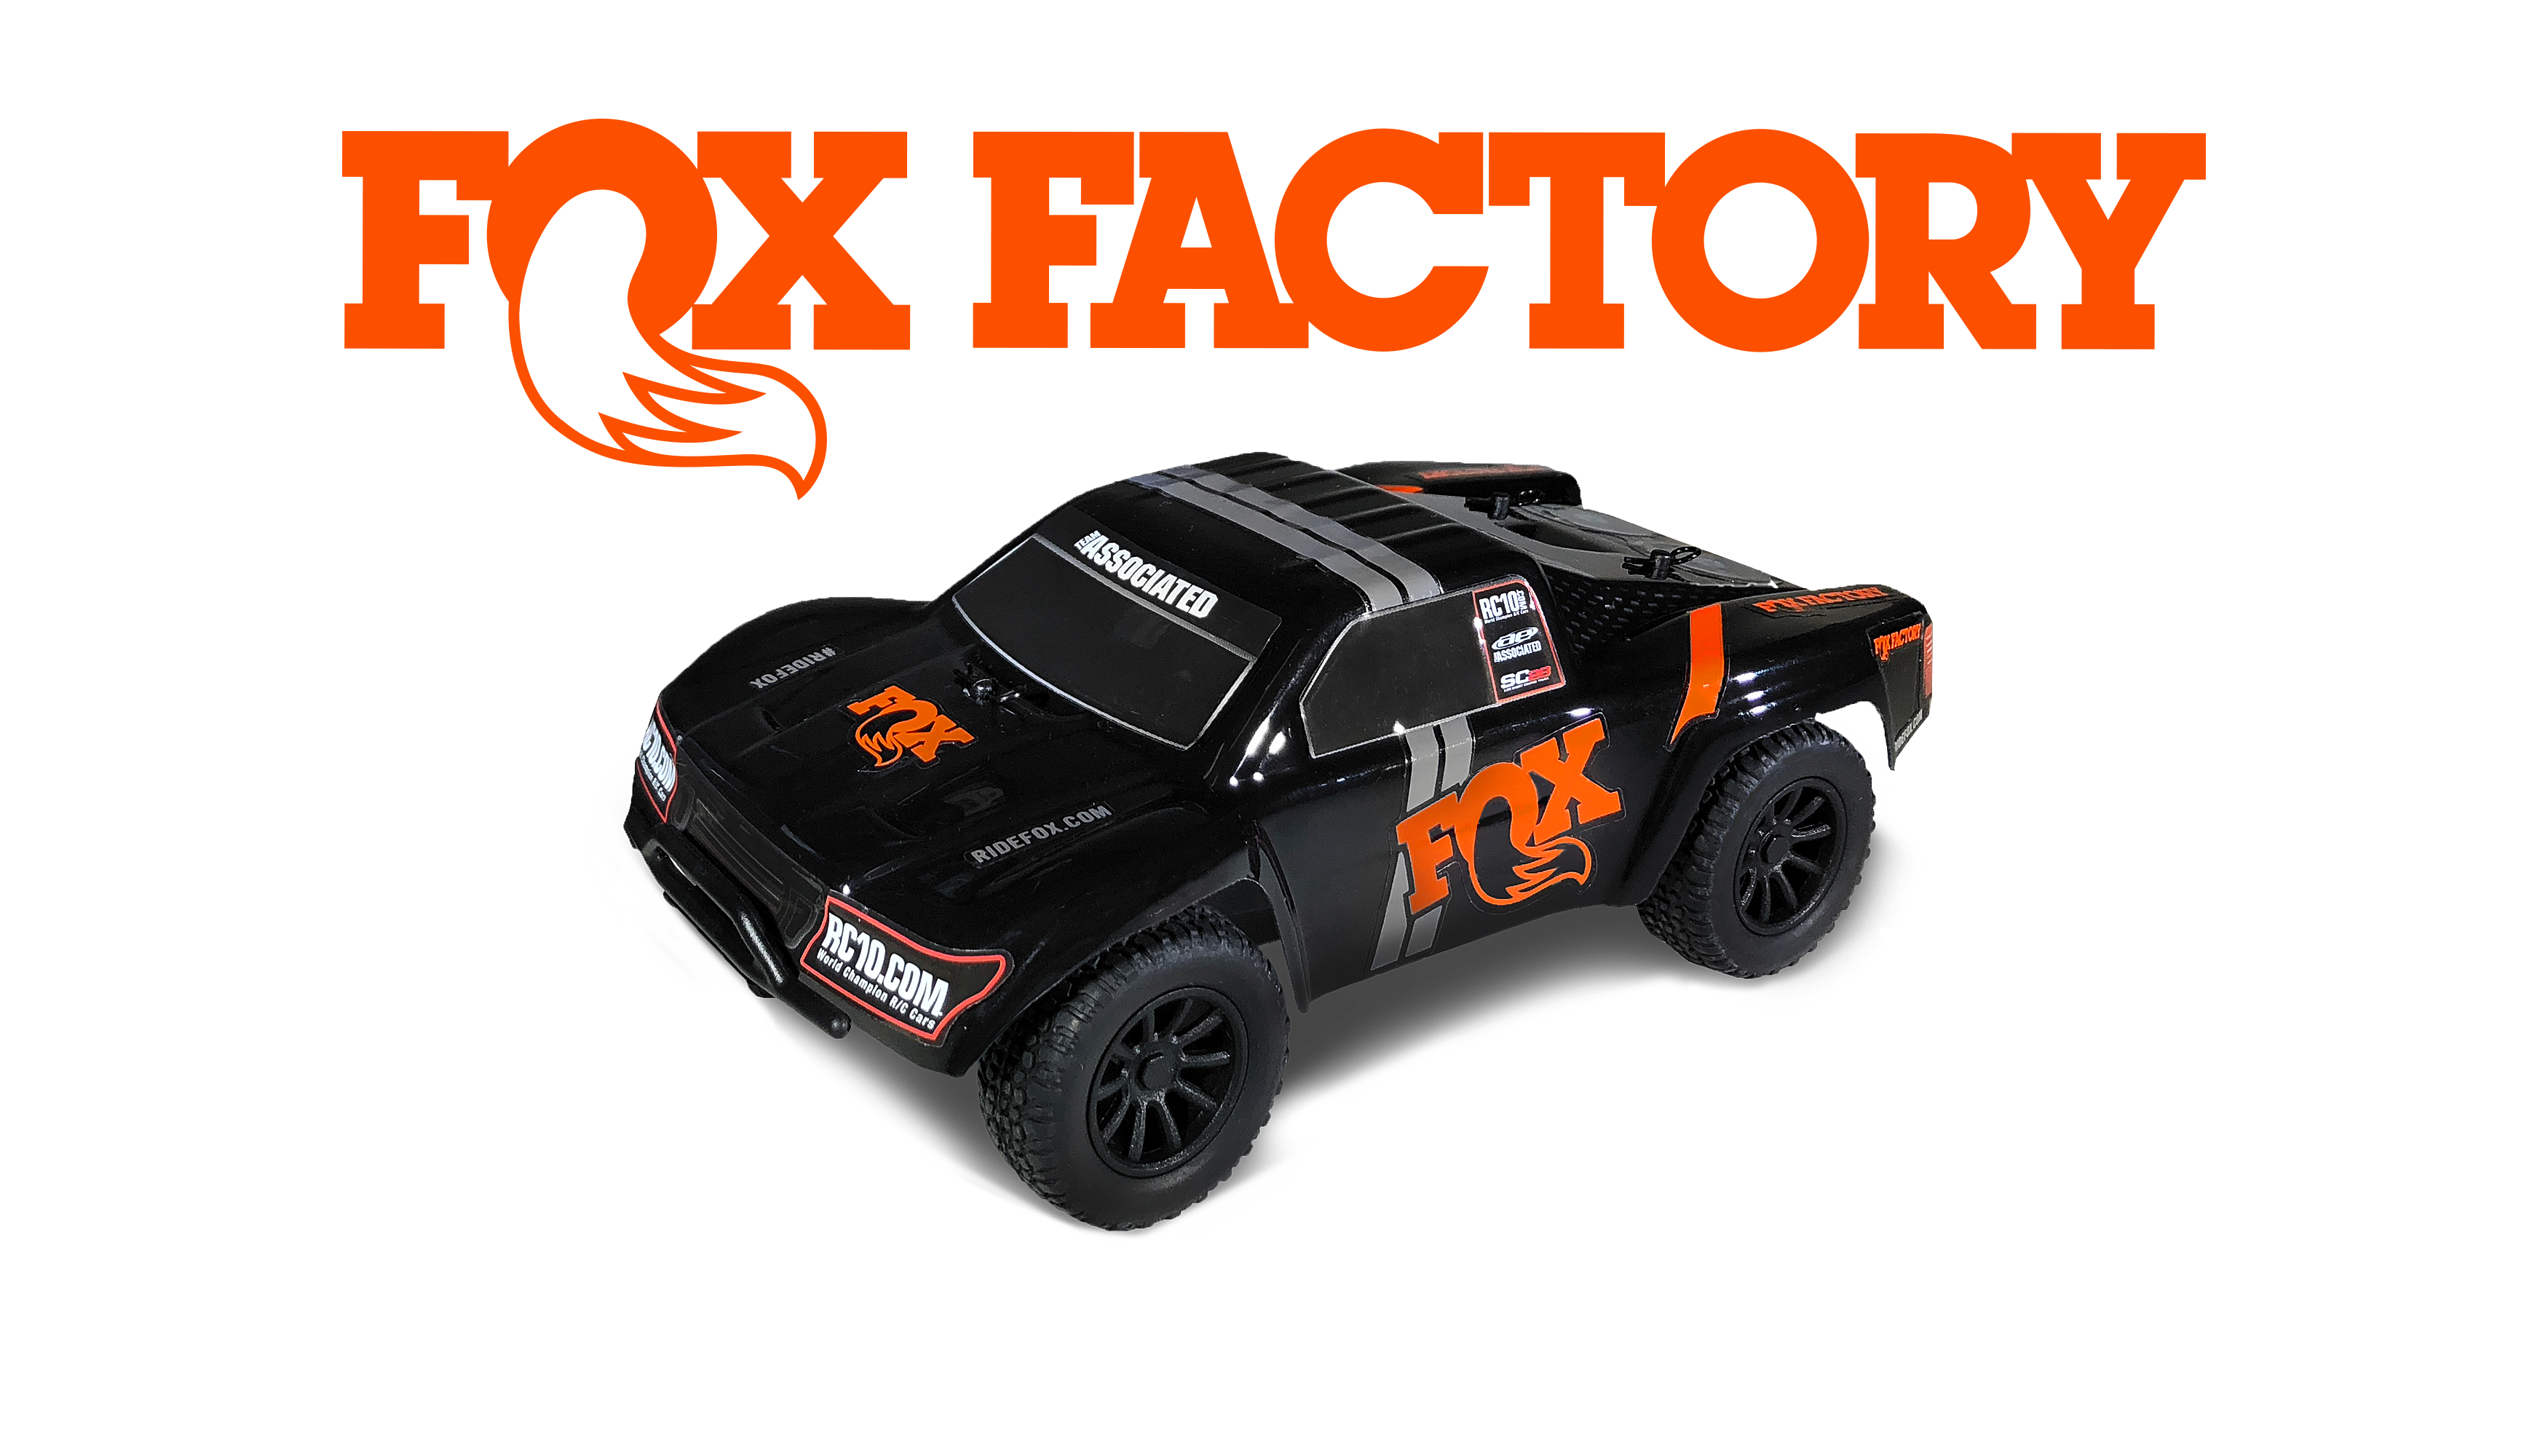 Fox Factory RC10 Remote Control Car